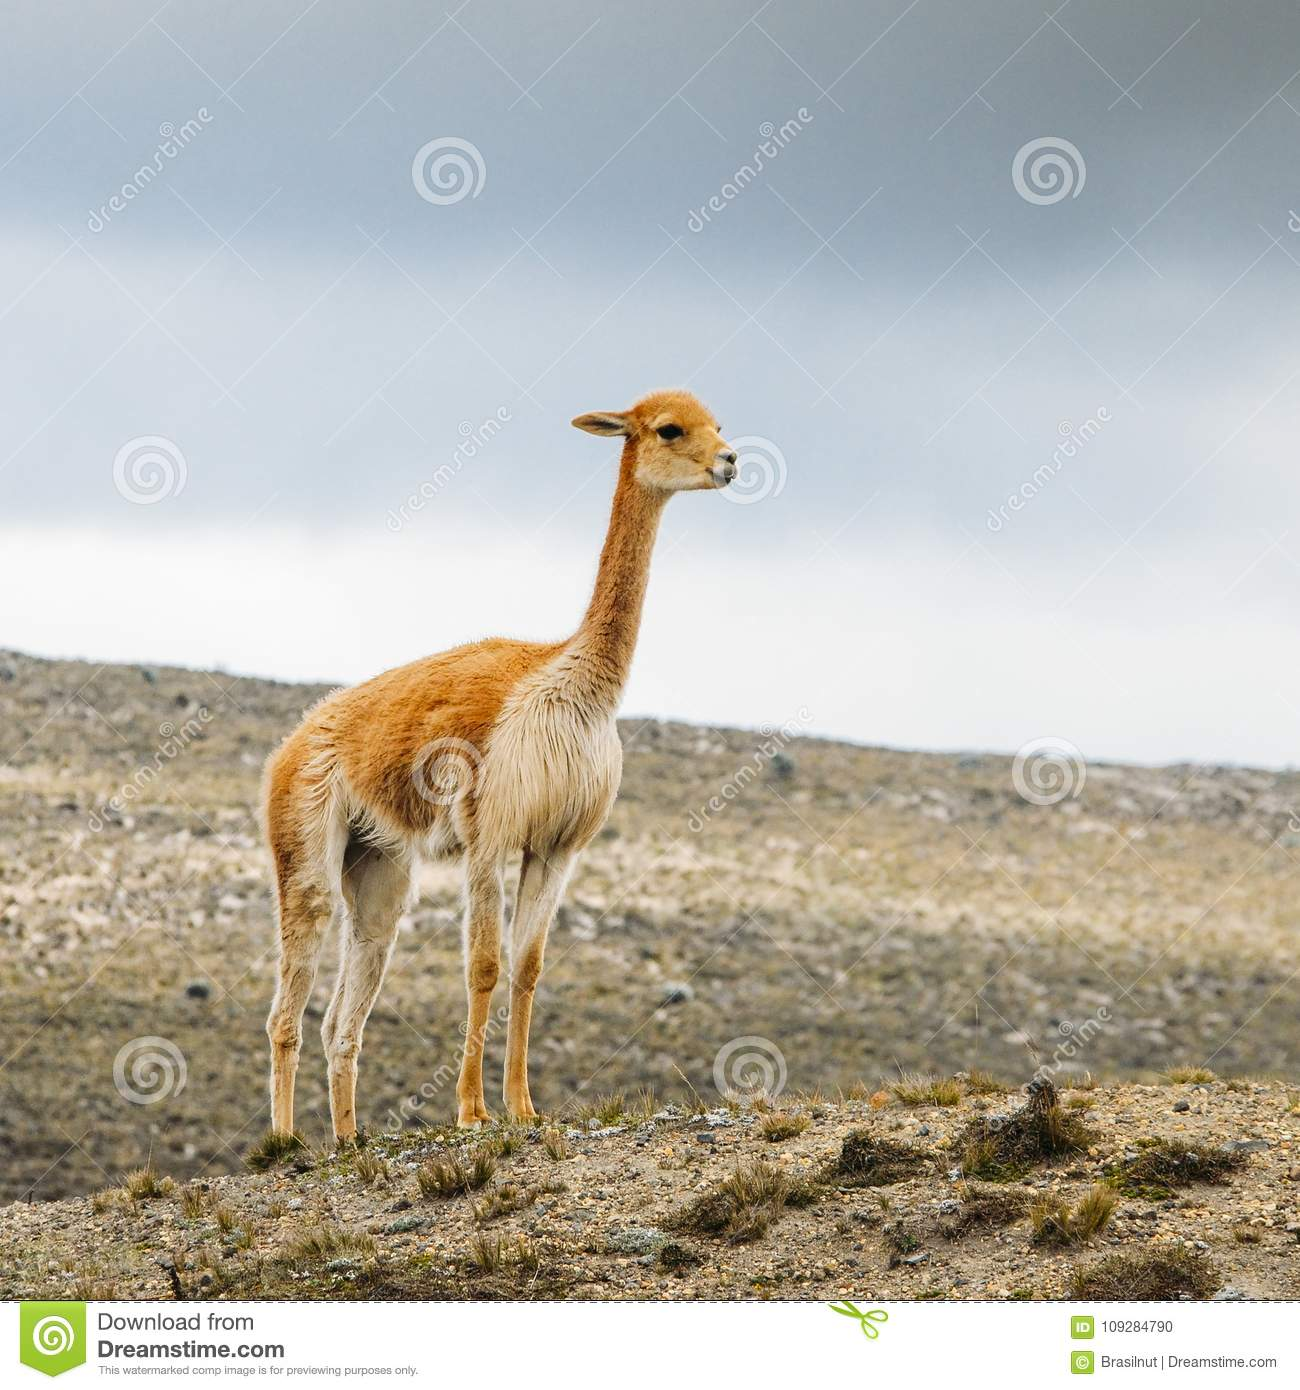 llama is a domesticated south american camelid widely used as a